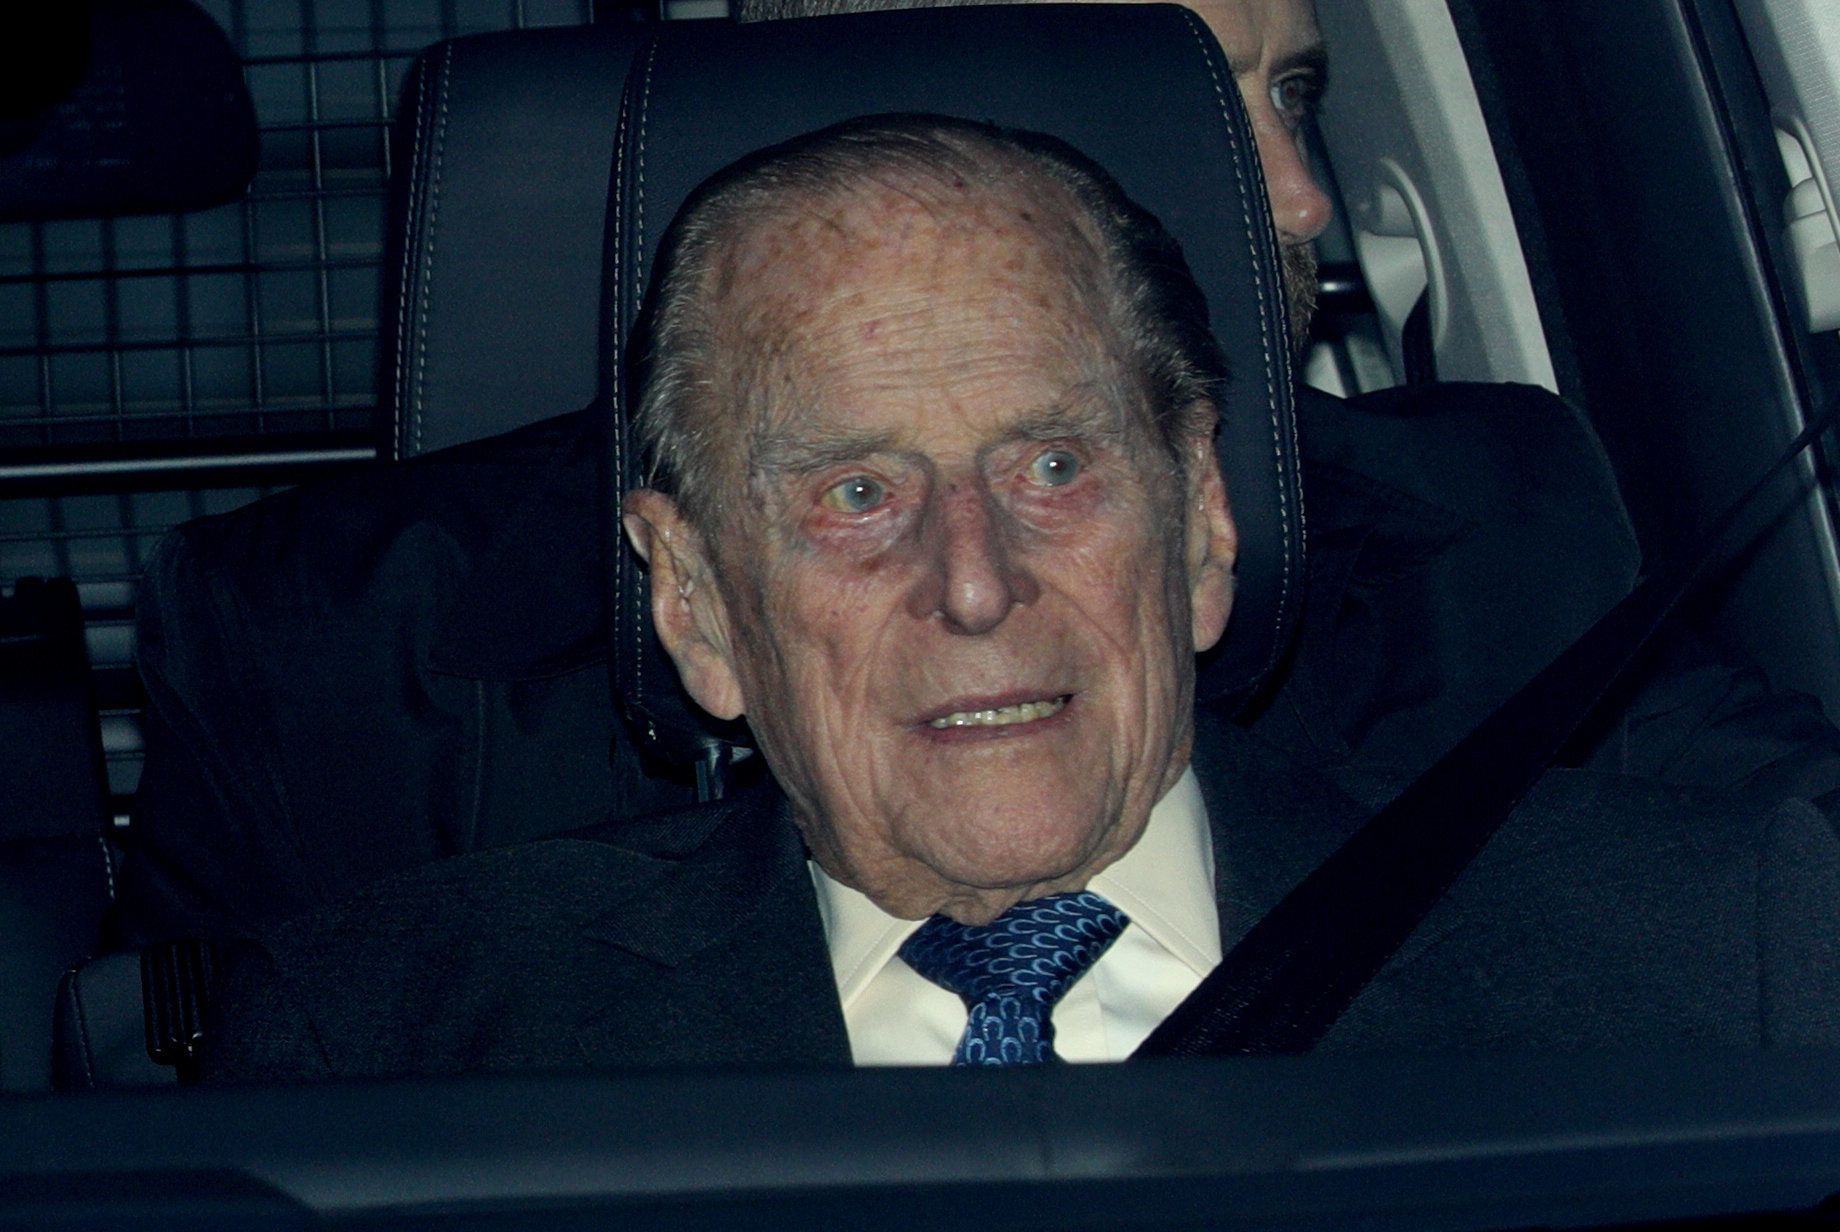 Prince Philip Involved In Car Crash But Not Injured, Palace